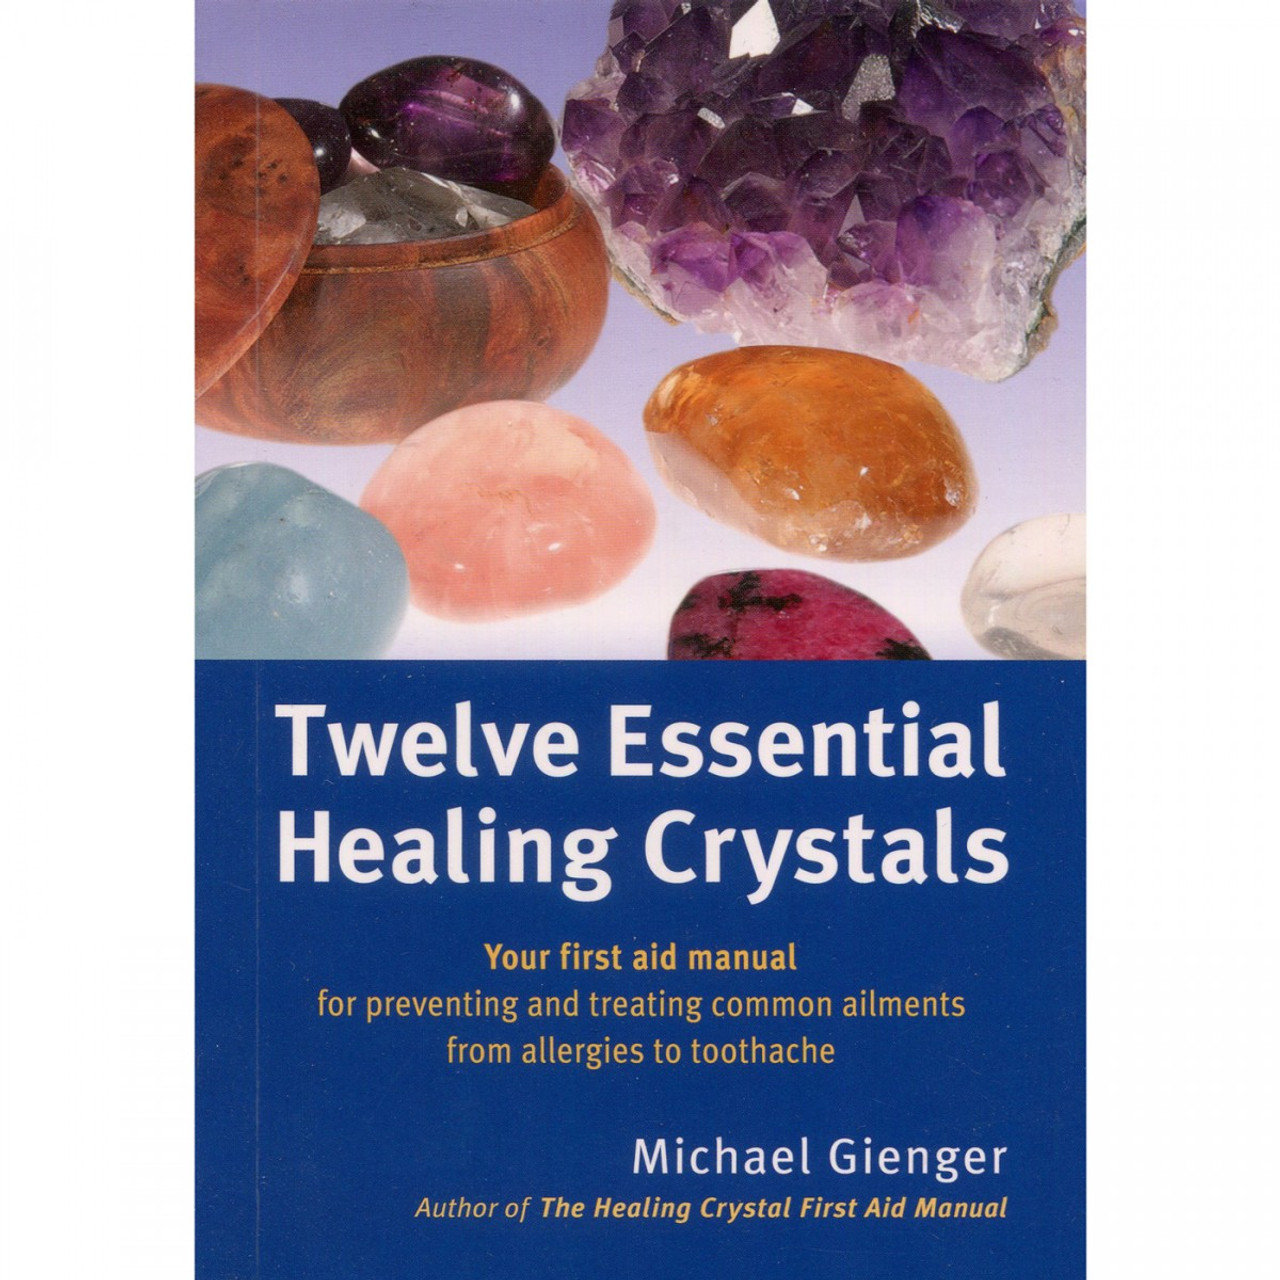 Twelve Essential Healing Crystals by Michael Gienger